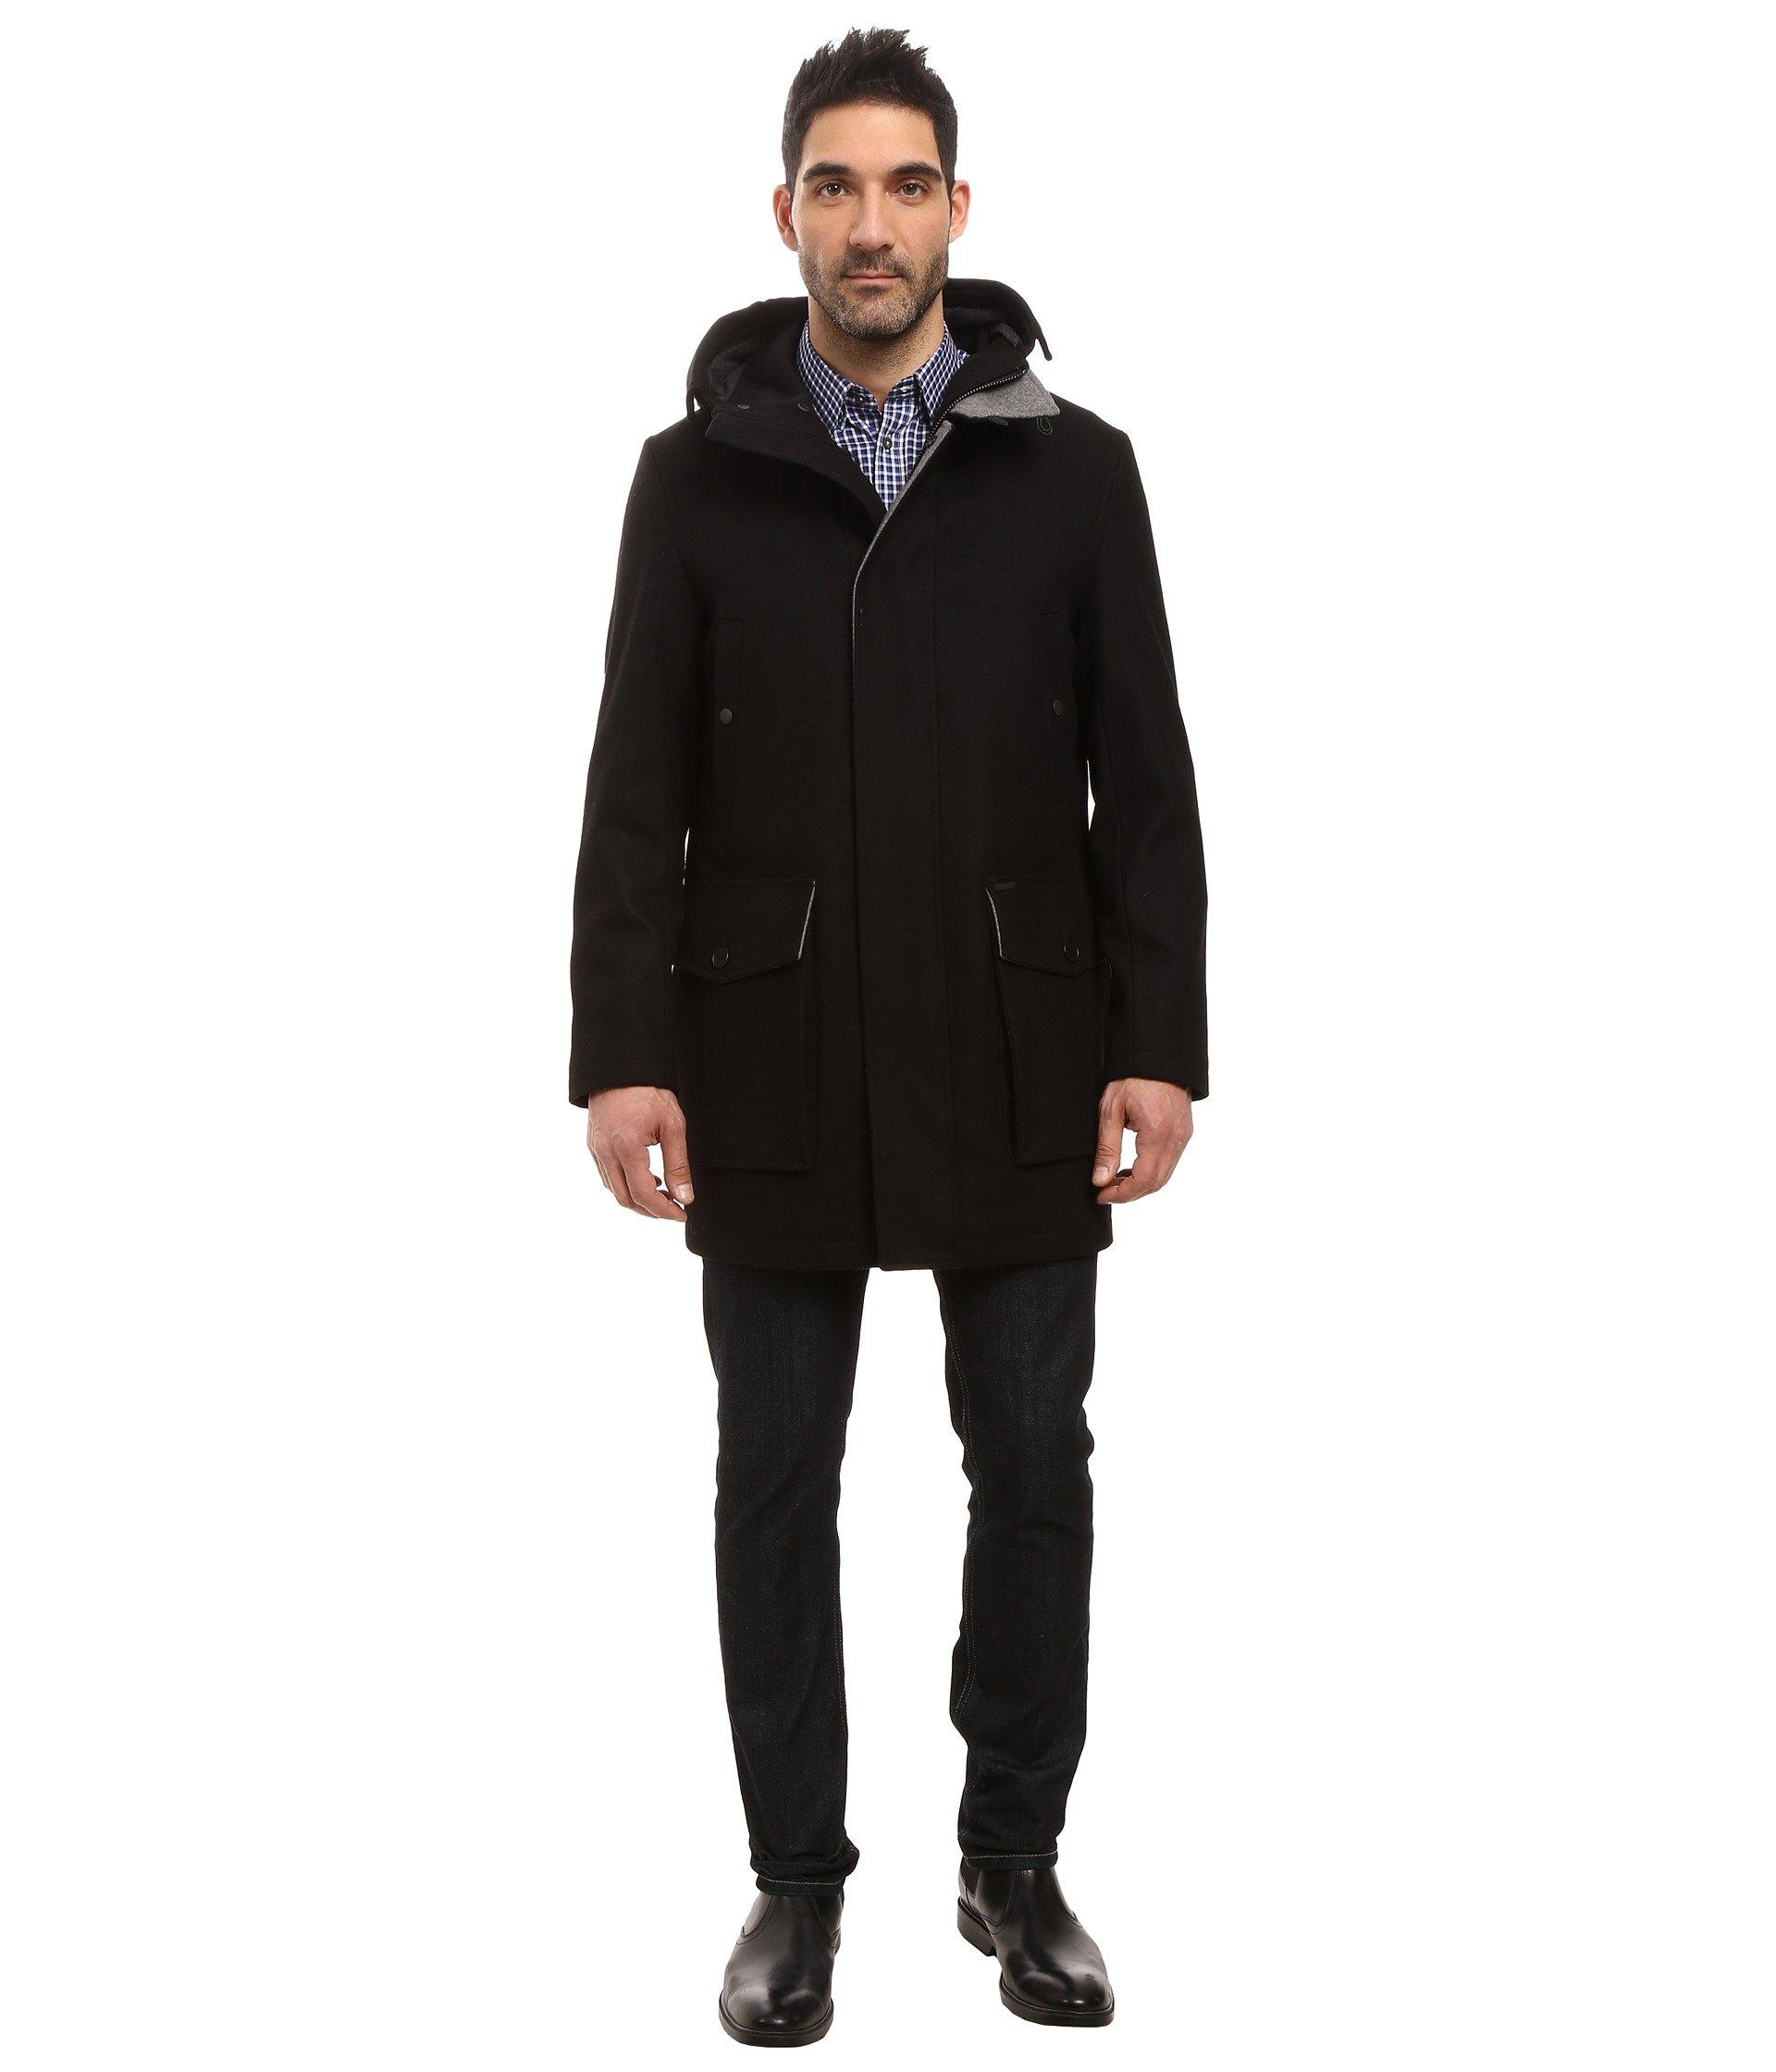 Cole Haan Mens Melton Parka with Oversized Hood Black - Coats & Outerwear